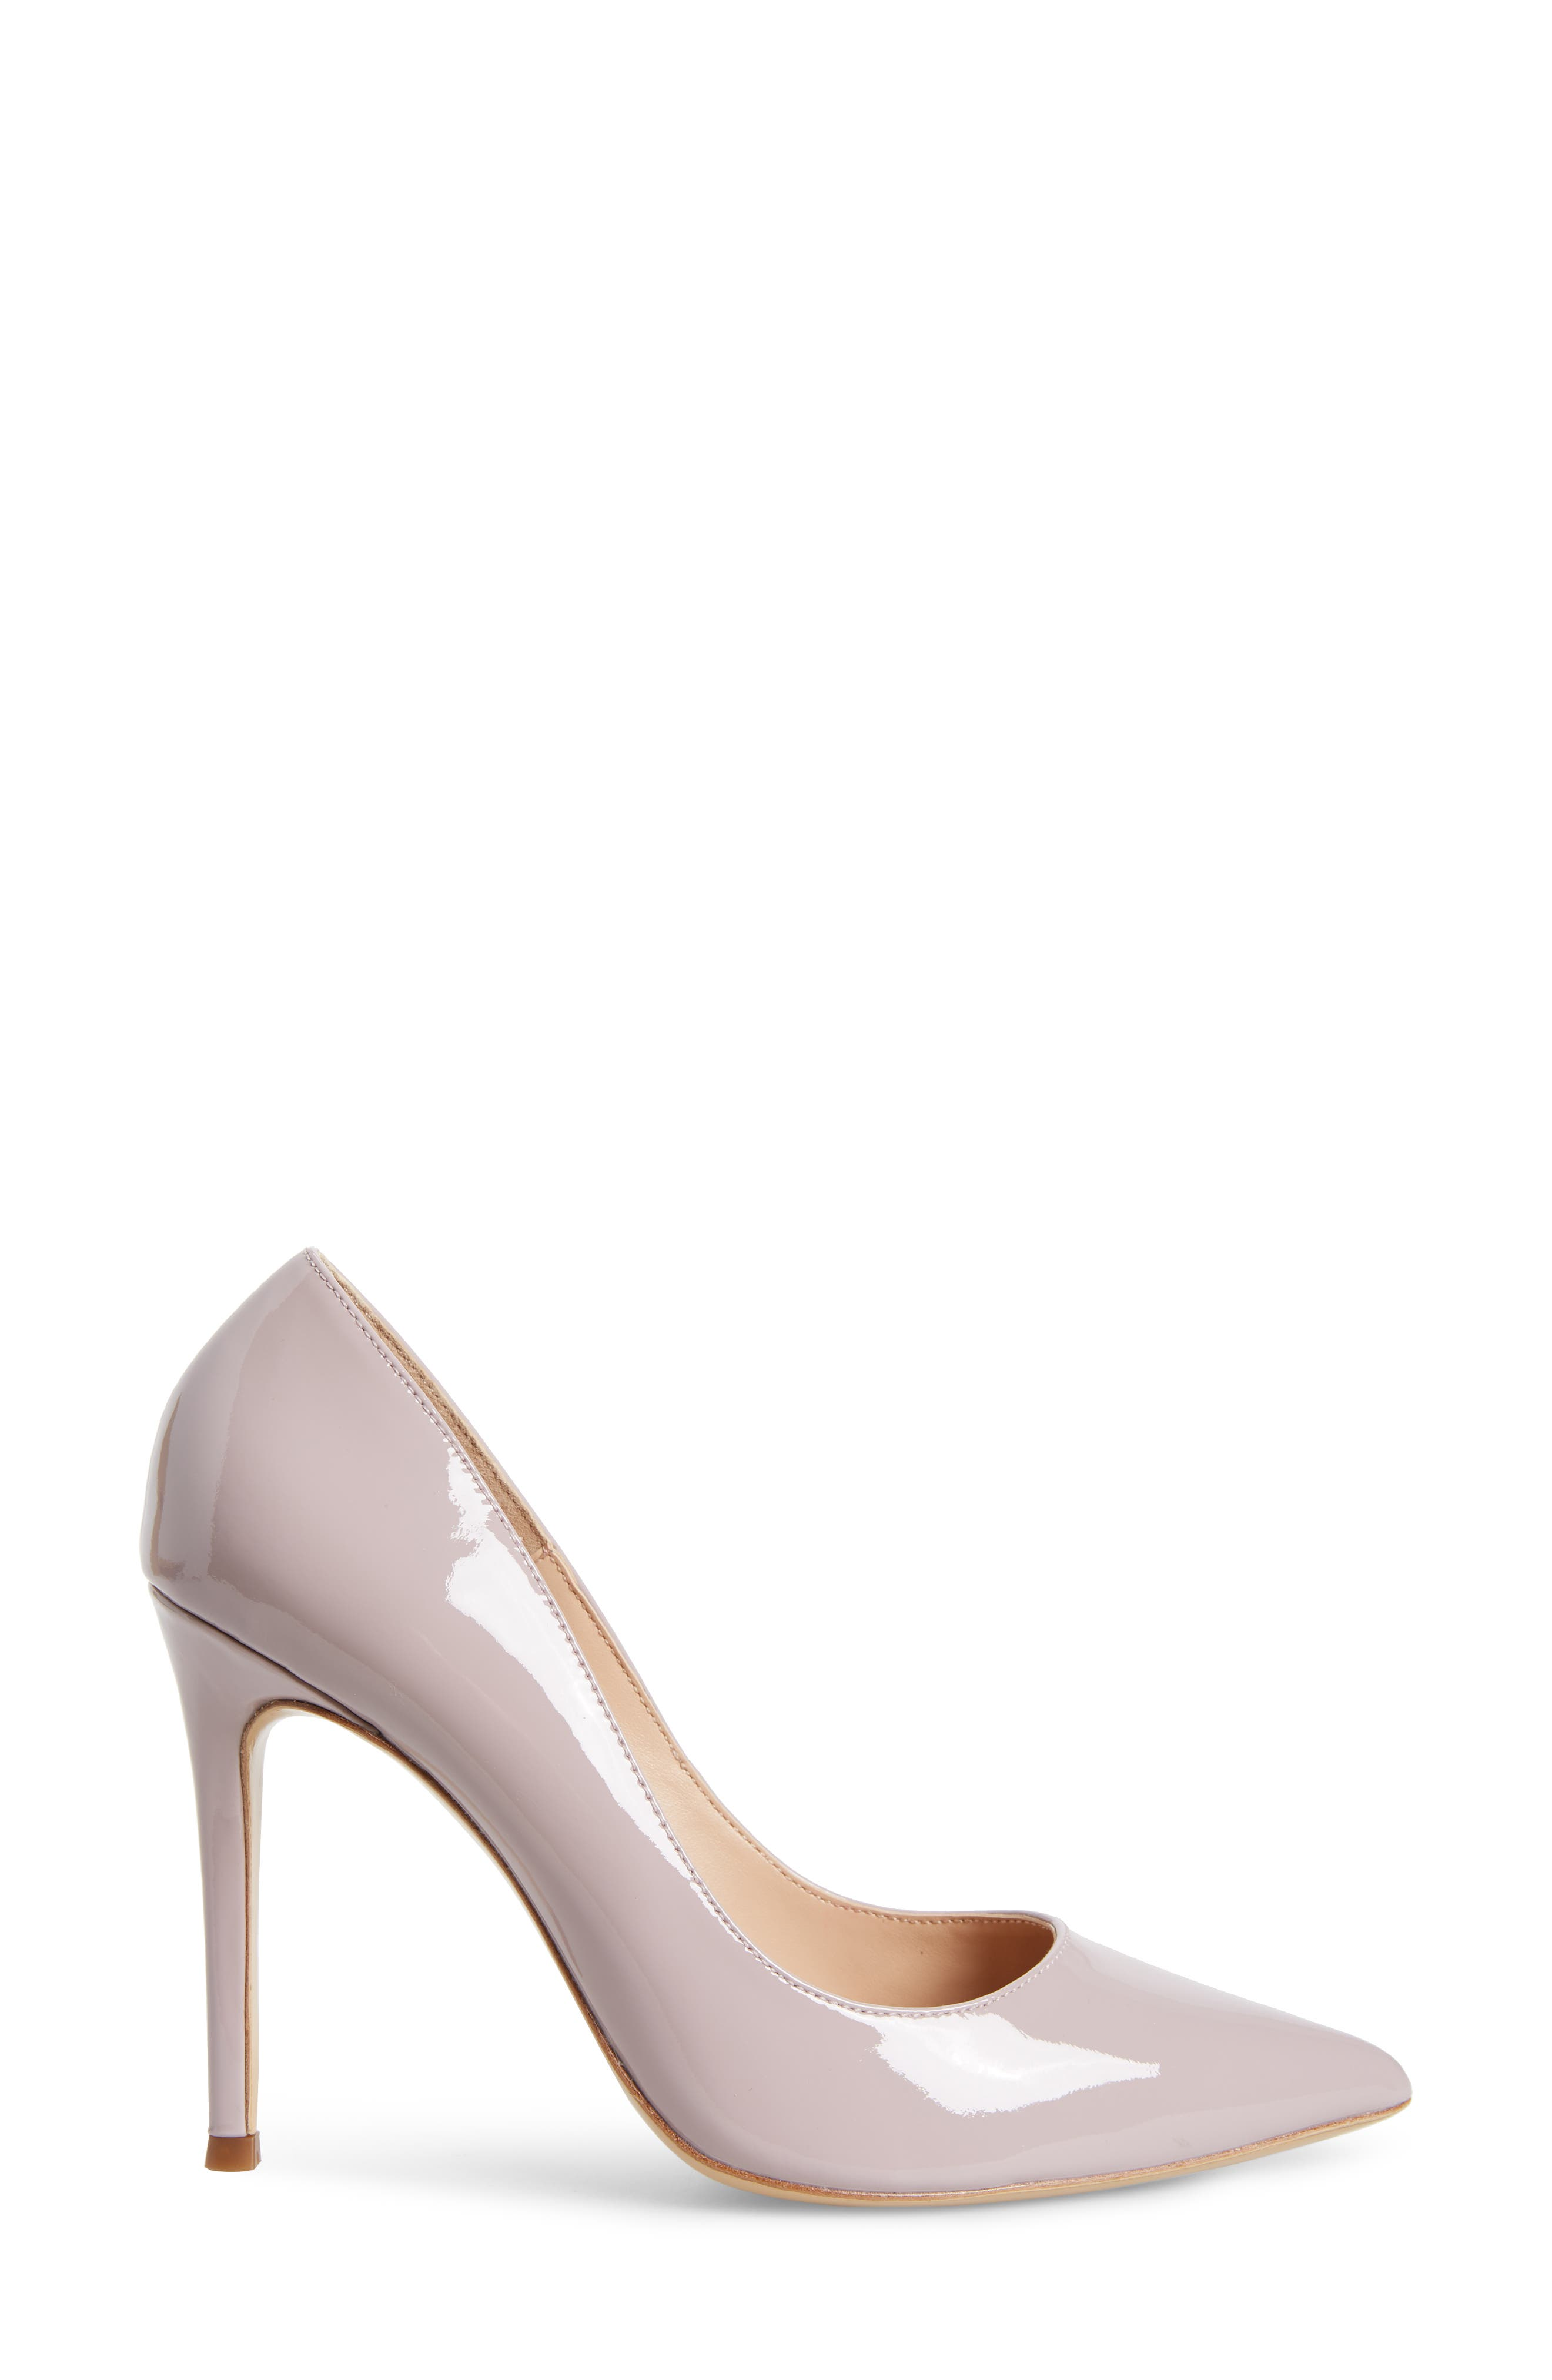 Calessi Pointy Toe Pump,                             Alternate thumbnail 3, color,                             LAVENDER PATENT LEATHER